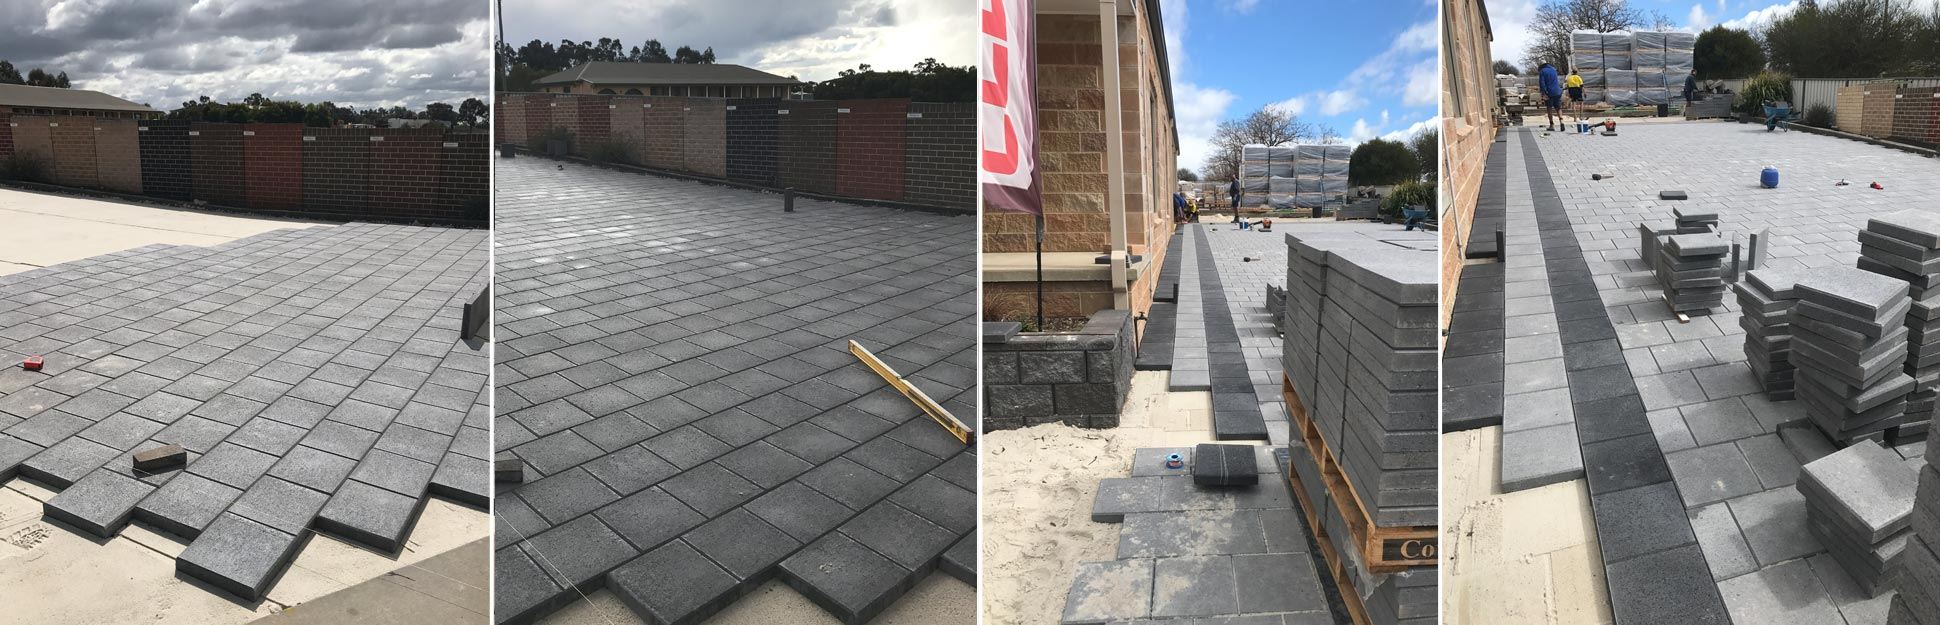 laying paving at the Cowra Concrete Products head office and display room